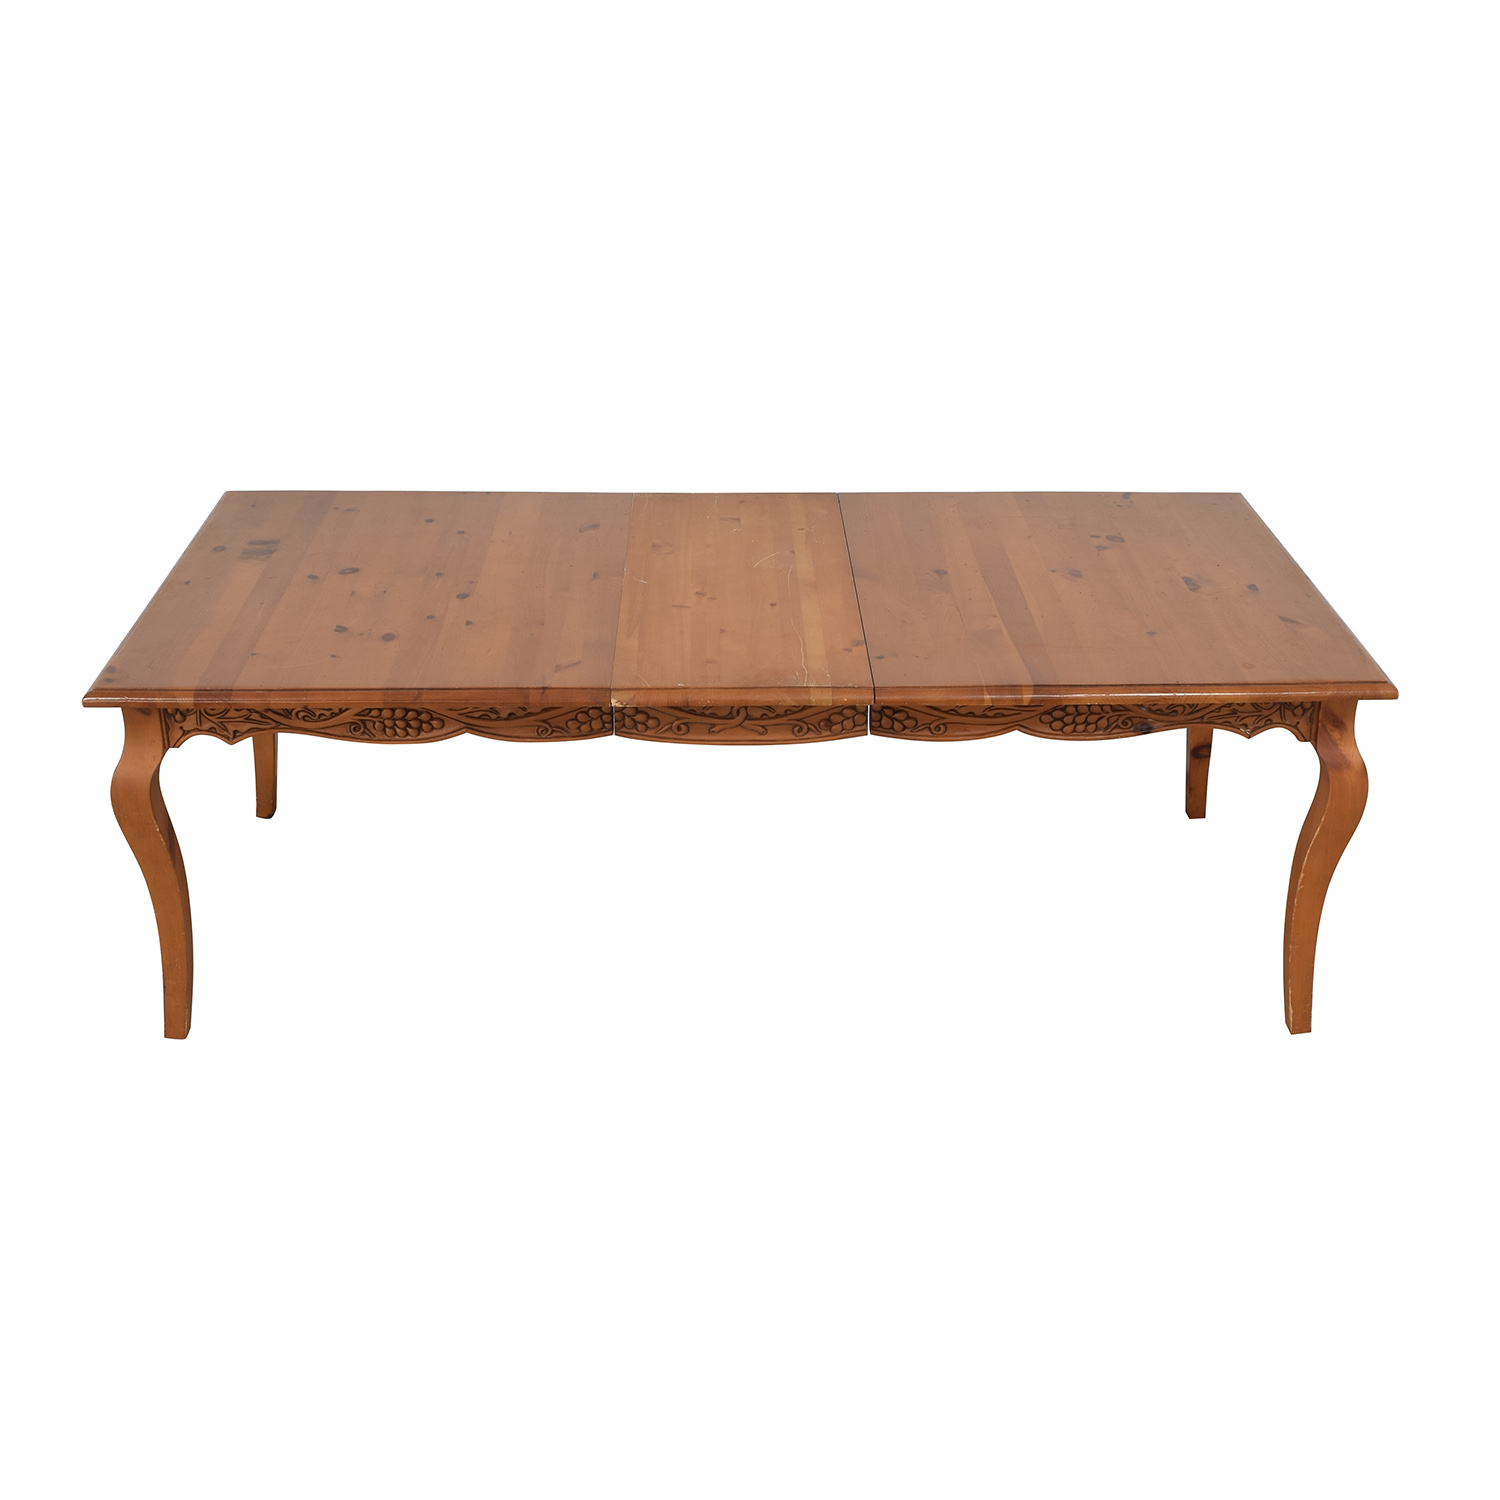 Huffman Koos Expanding Dining Table / Dinner Tables